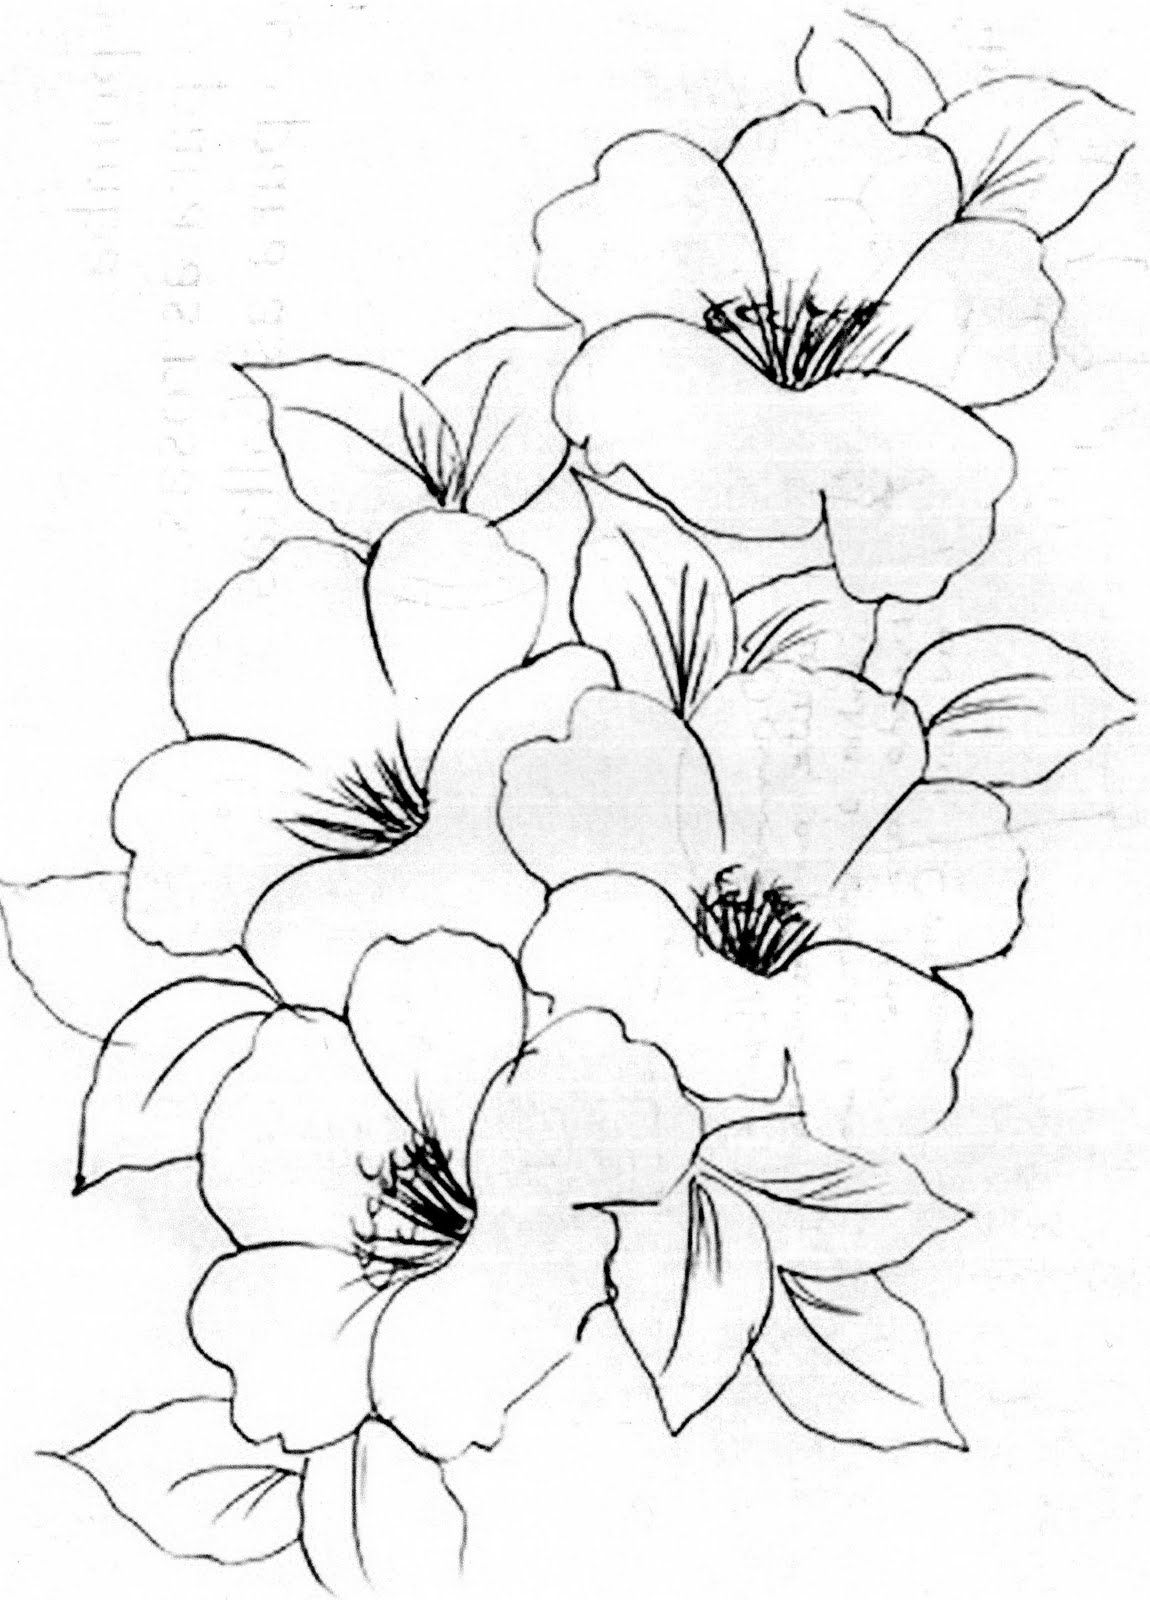 Flower image, clip art. Color in. Blank, fill in yourself